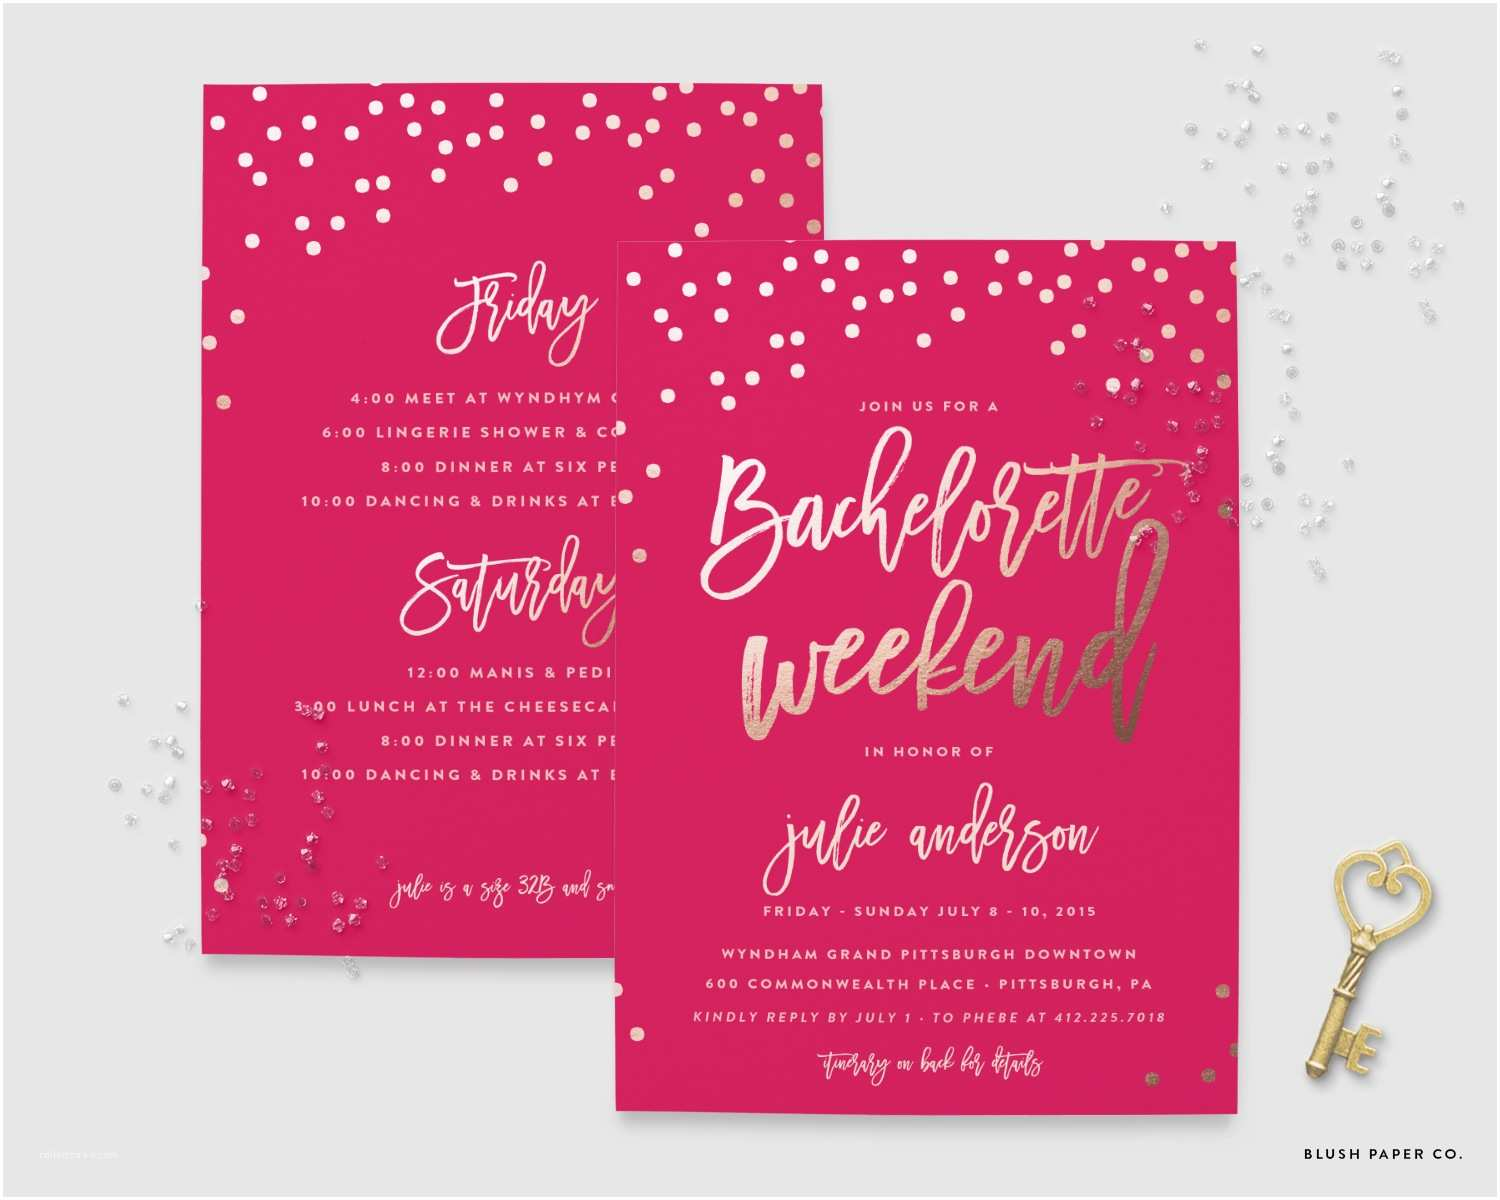 Bachelorette Invitations Bachelorette Party Invitations